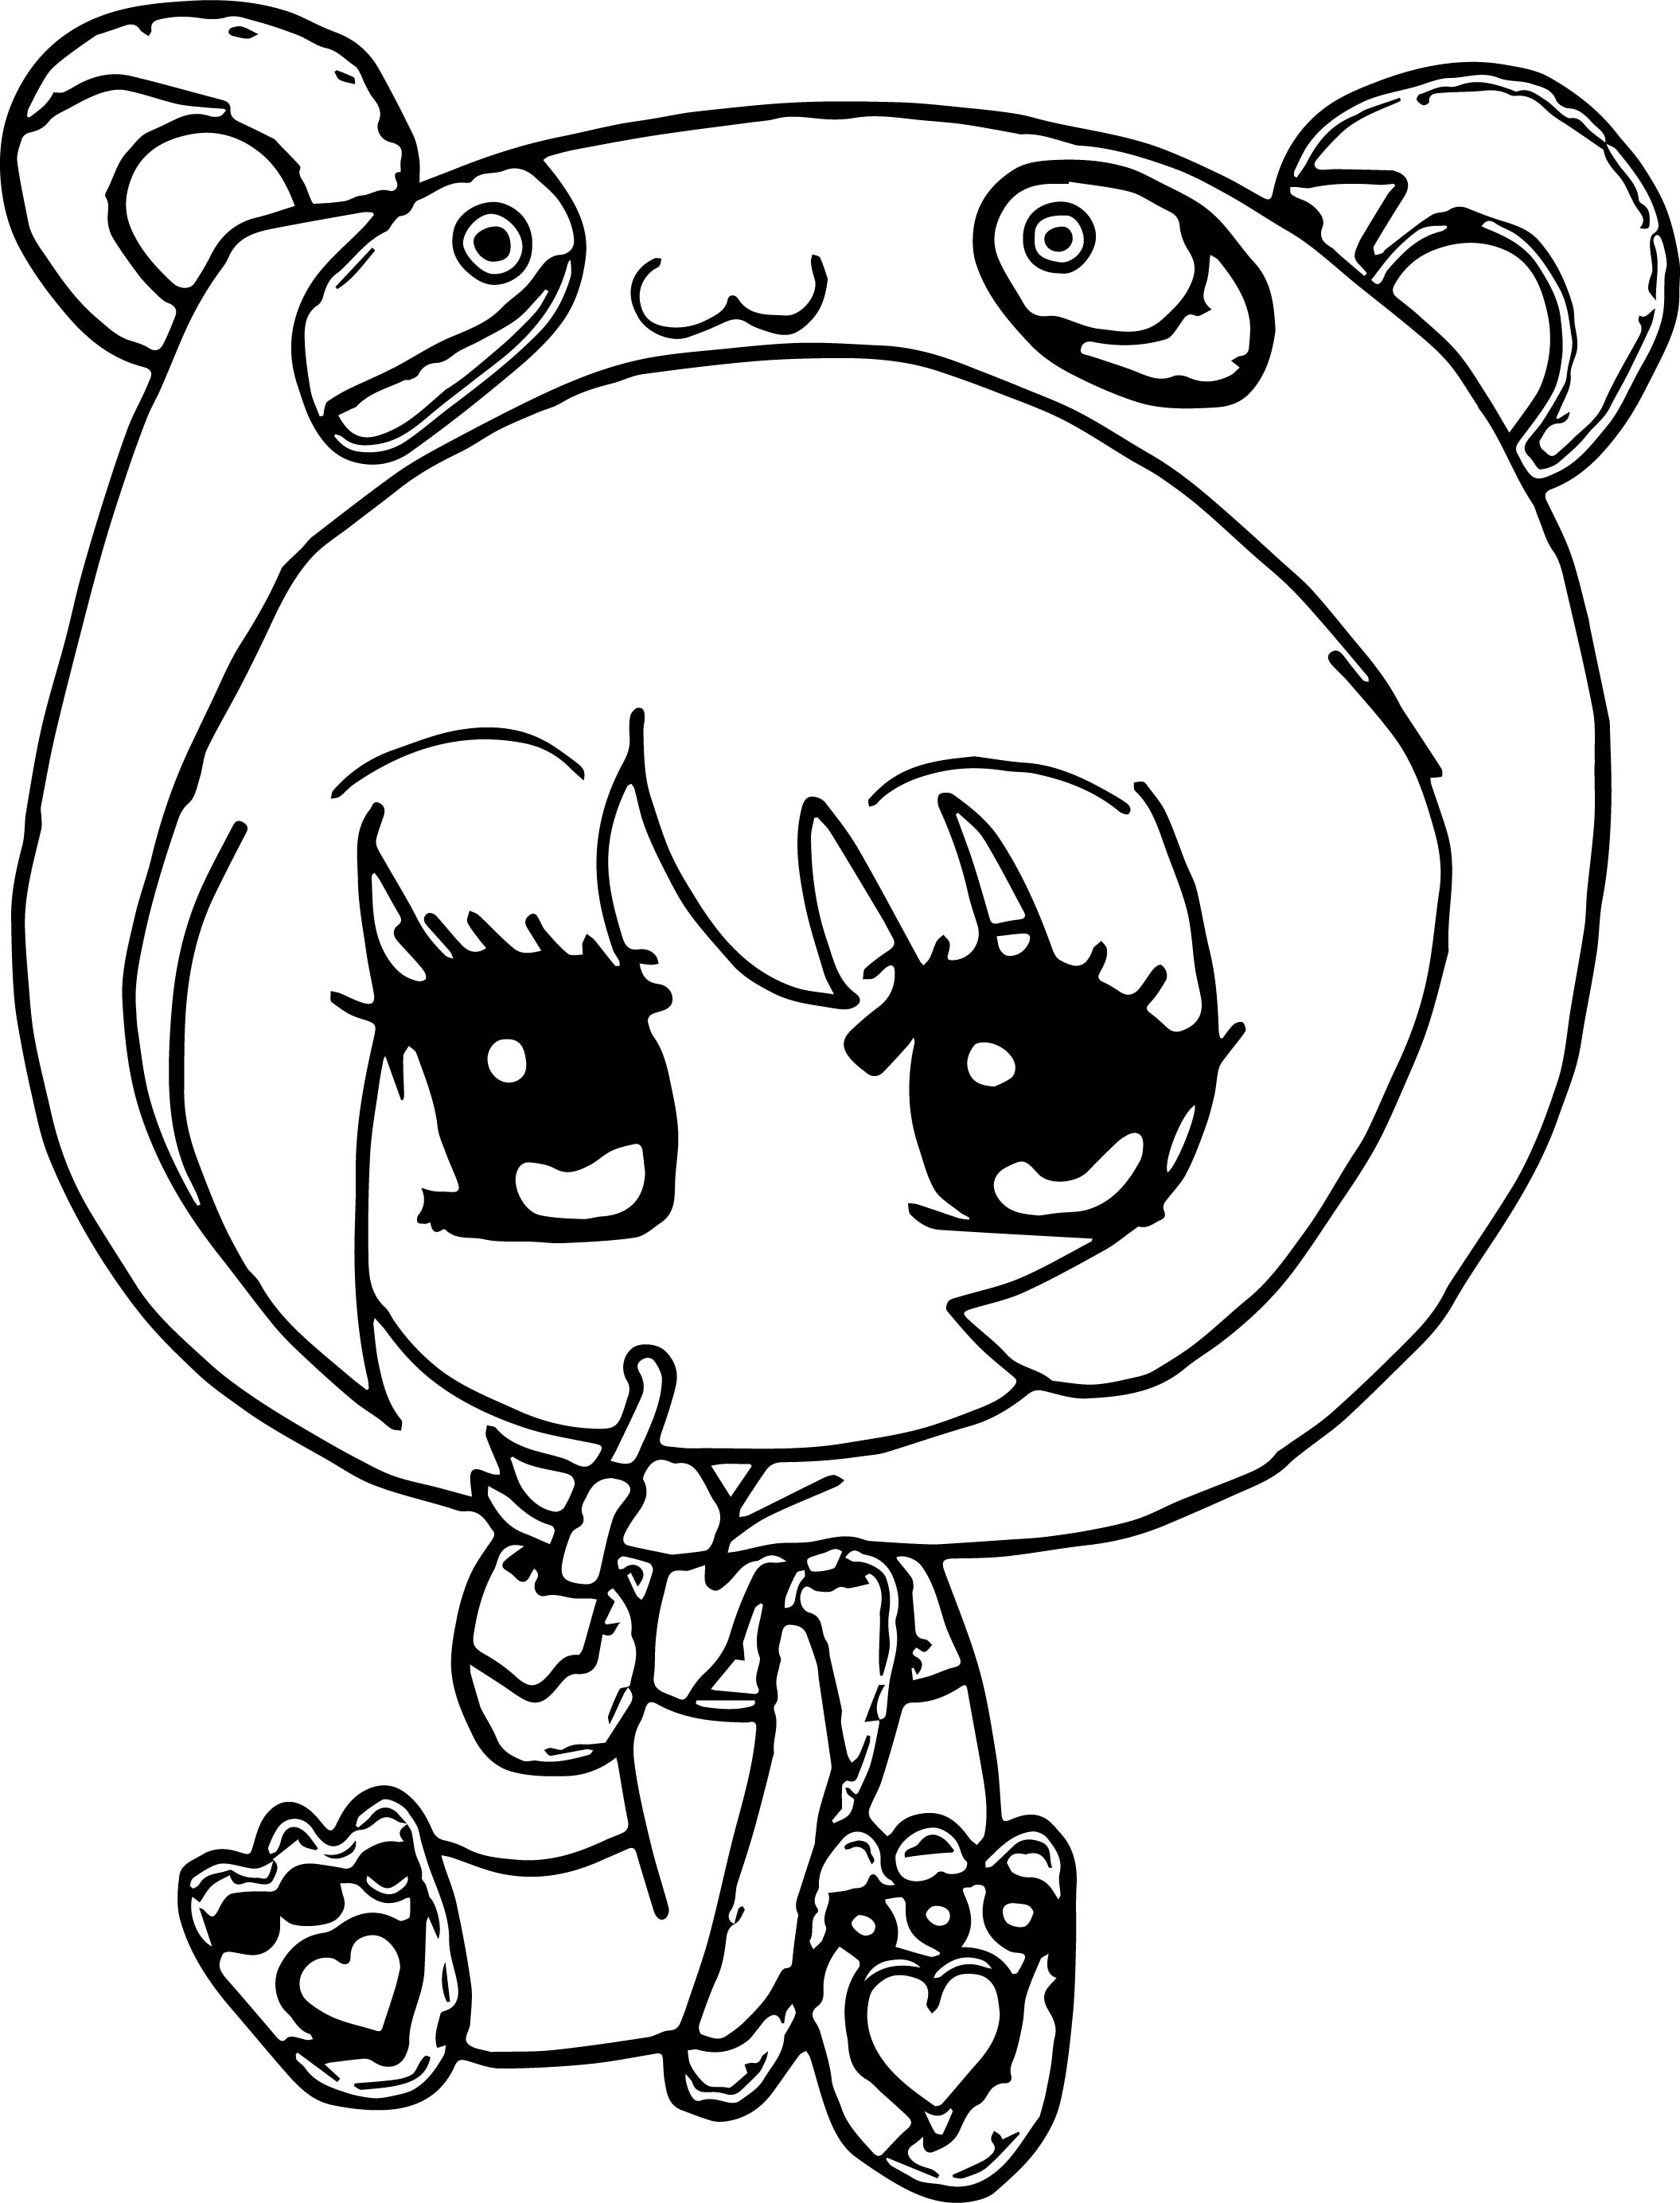 anime chibi boy coloring pages - photo#45